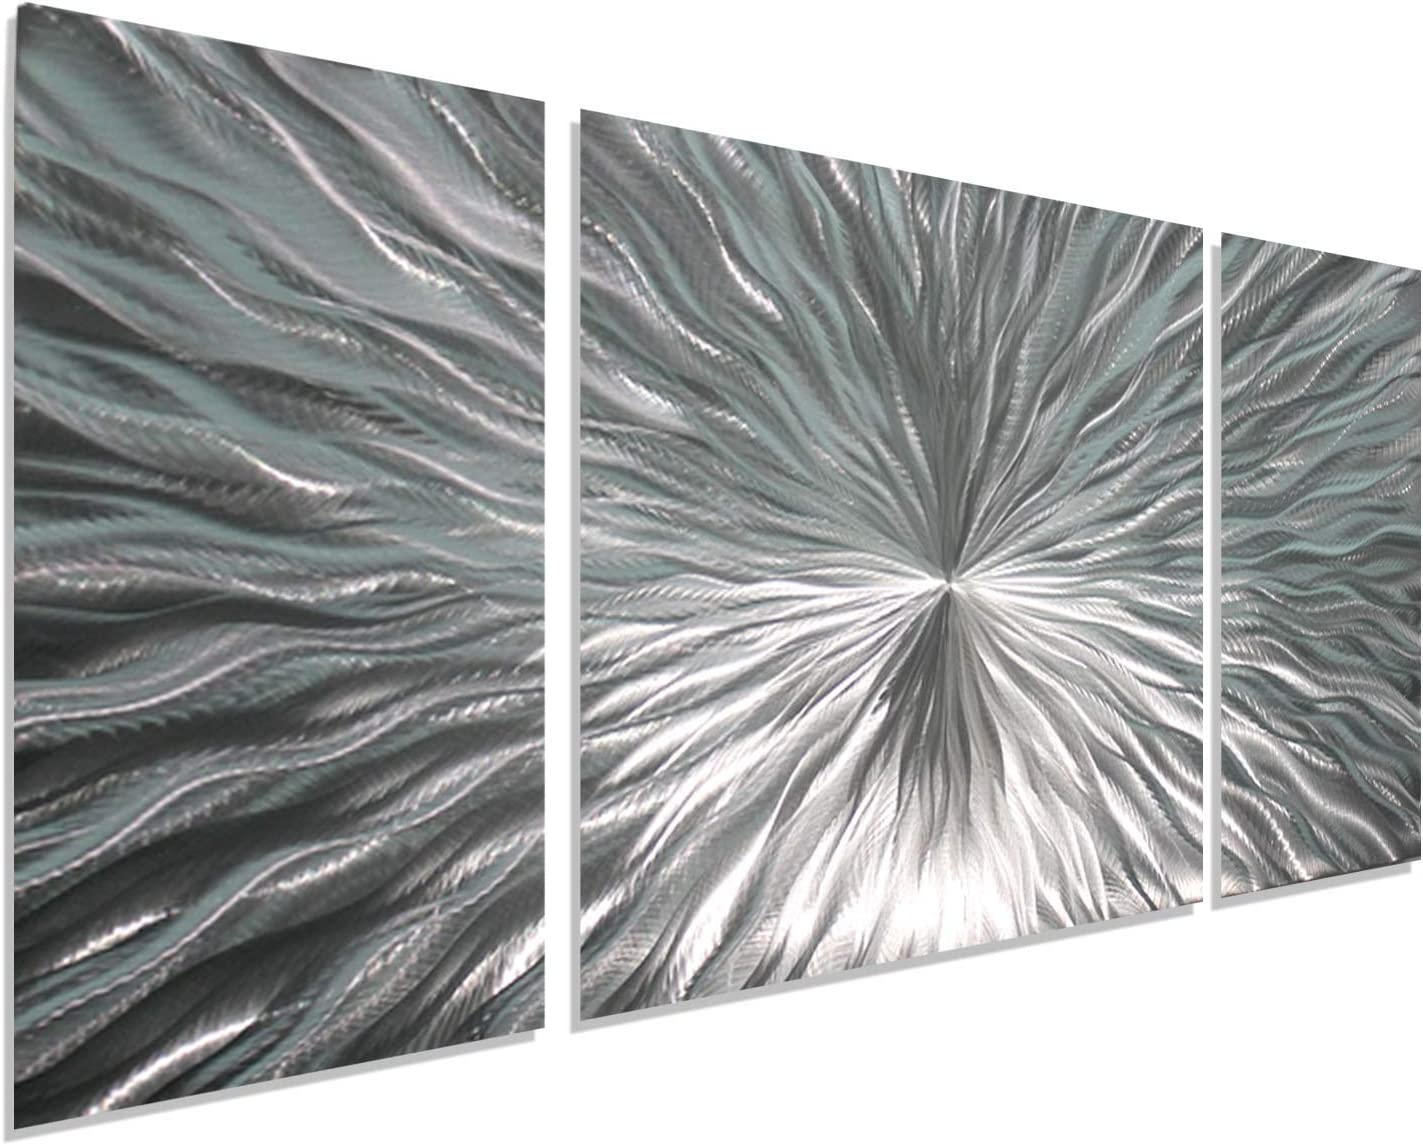 Amazon Com Statements2000 Silver Metal Wall Art By Jon Allen Modern Abstract Metal Panel Wall Art Home Decor Home Accent Contemporary Metallic Wall Sculpture Enlivenment Iii 50 X 24 Home